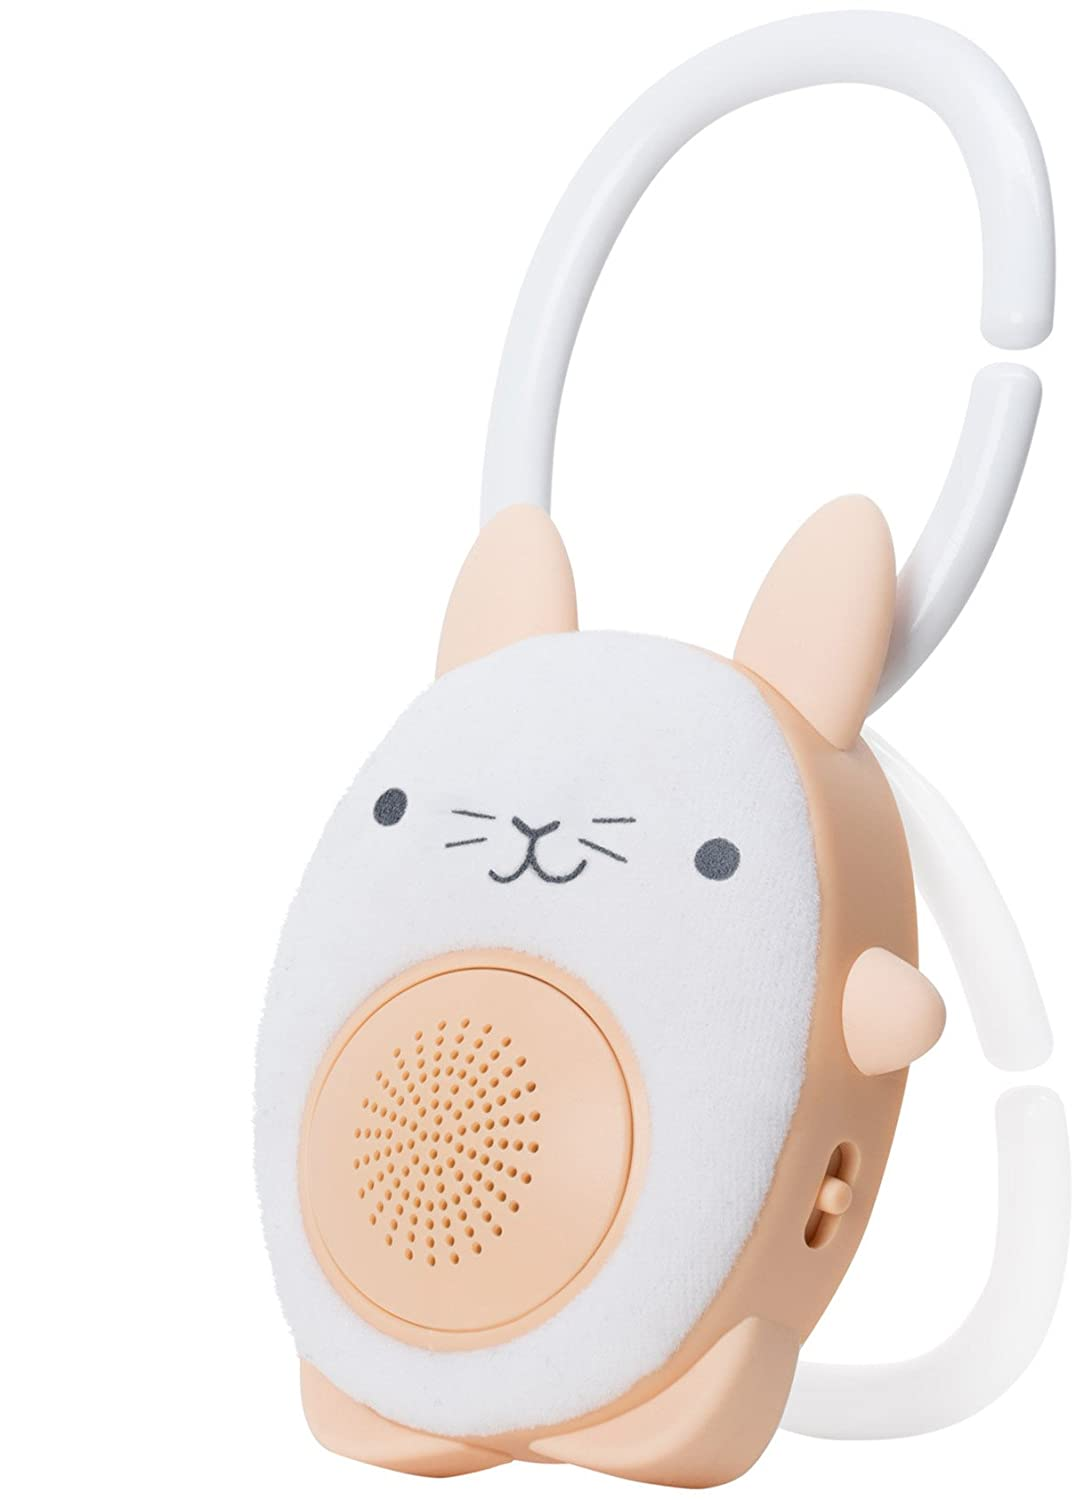 SoundBub by WavHello, White Noise Machine and Bluetooth Speaker | Portable and Rechargeable Baby Sleep Sound Soother – Benji the Bear, Brown WH-21-433